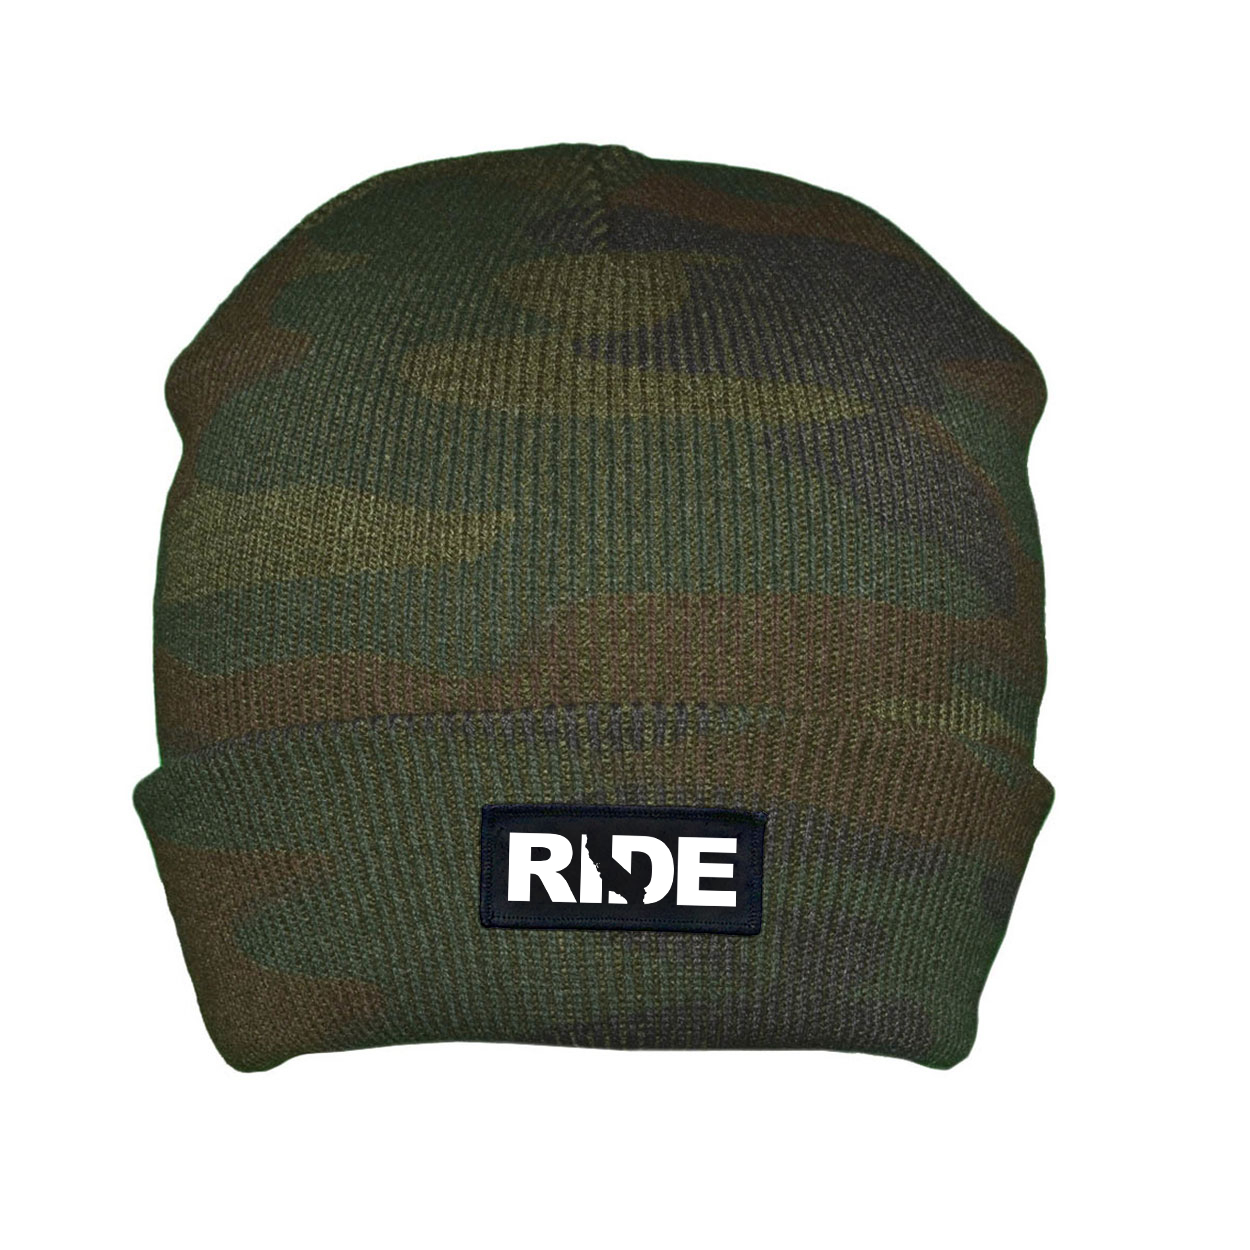 Ride California Night Out Woven Patch Roll Up Skully Beanie Camo (White Logo)